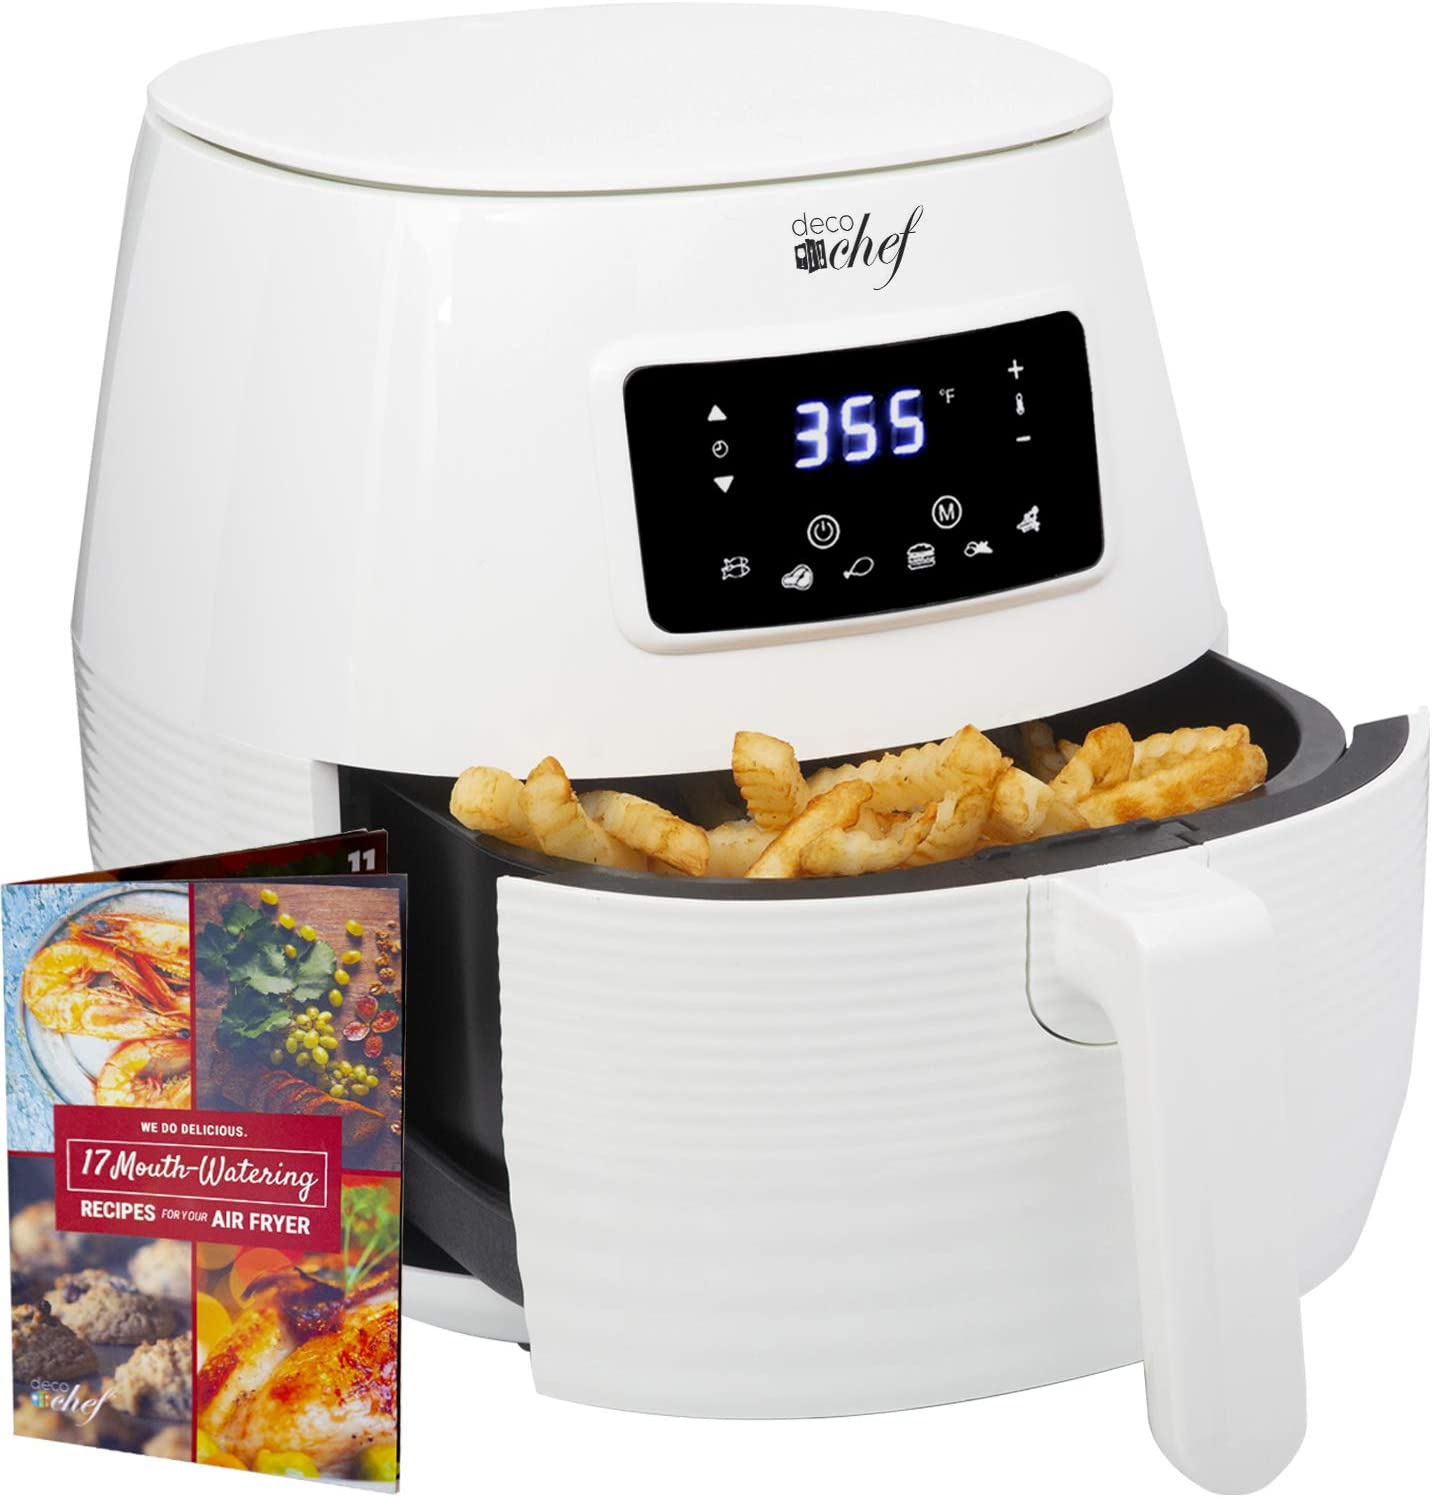 Deco Chef Digital Electric Air Fryer with Accessories and Cookbook- Air Frying, Roasting, Baking, Crisping, and Reheating for Healthier and Faster Cooking (White)